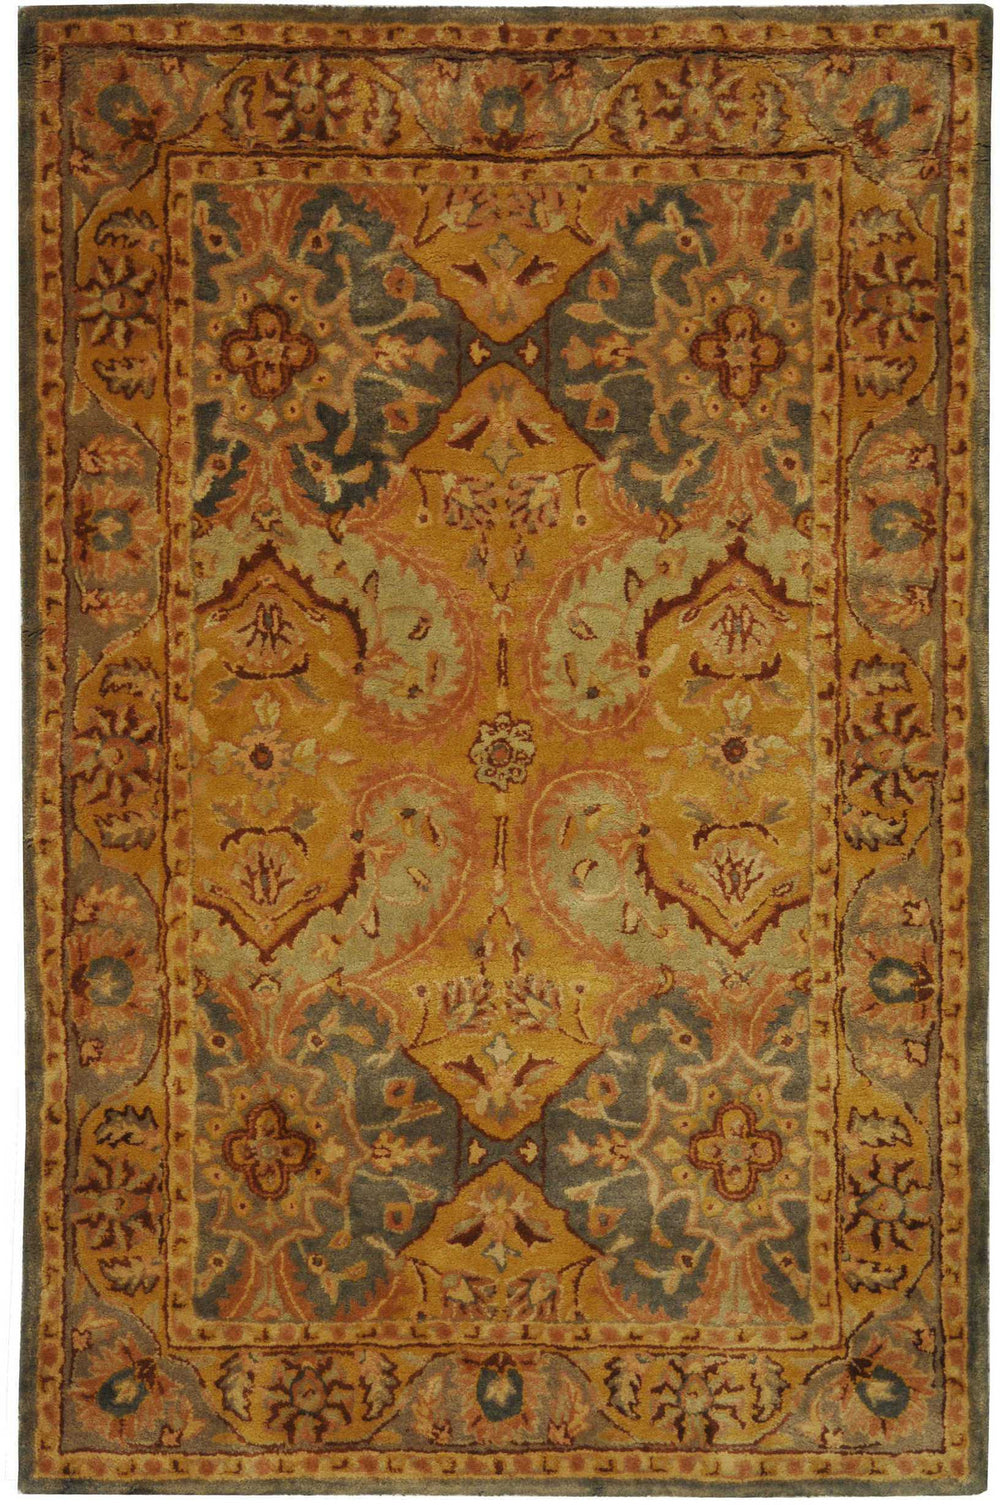 Safavieh Imperial IP111 Area Rug